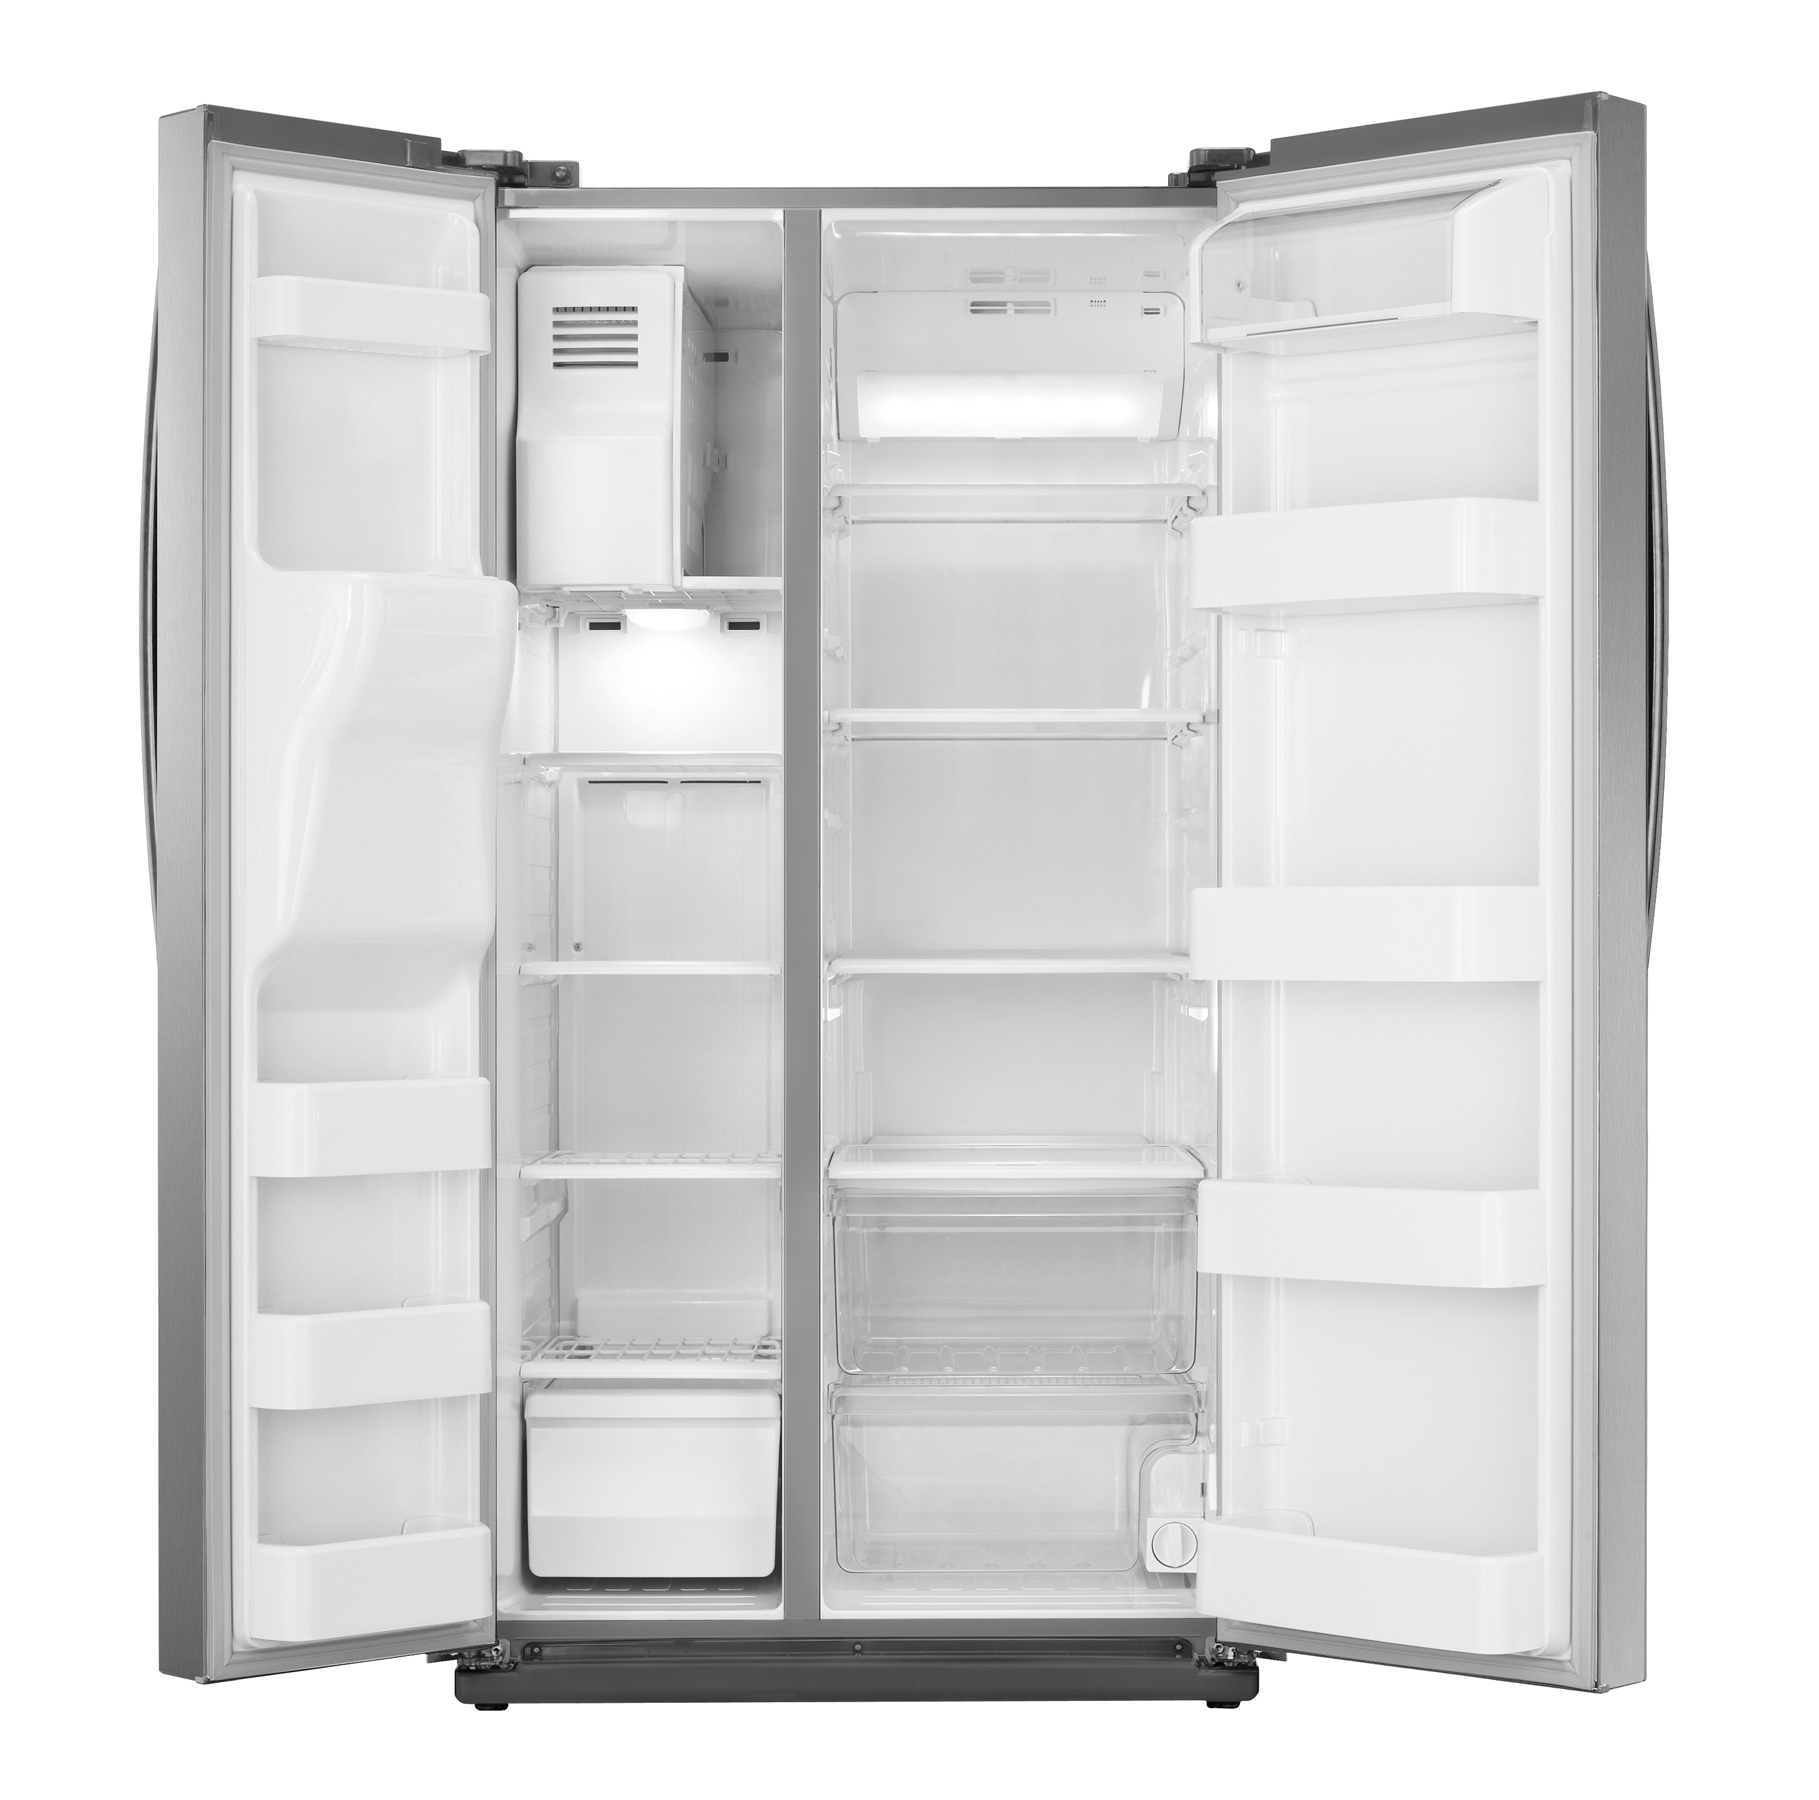 Samsung 24.5 cu. ft. Side-by-Side Refrigerator - Stainless Steel